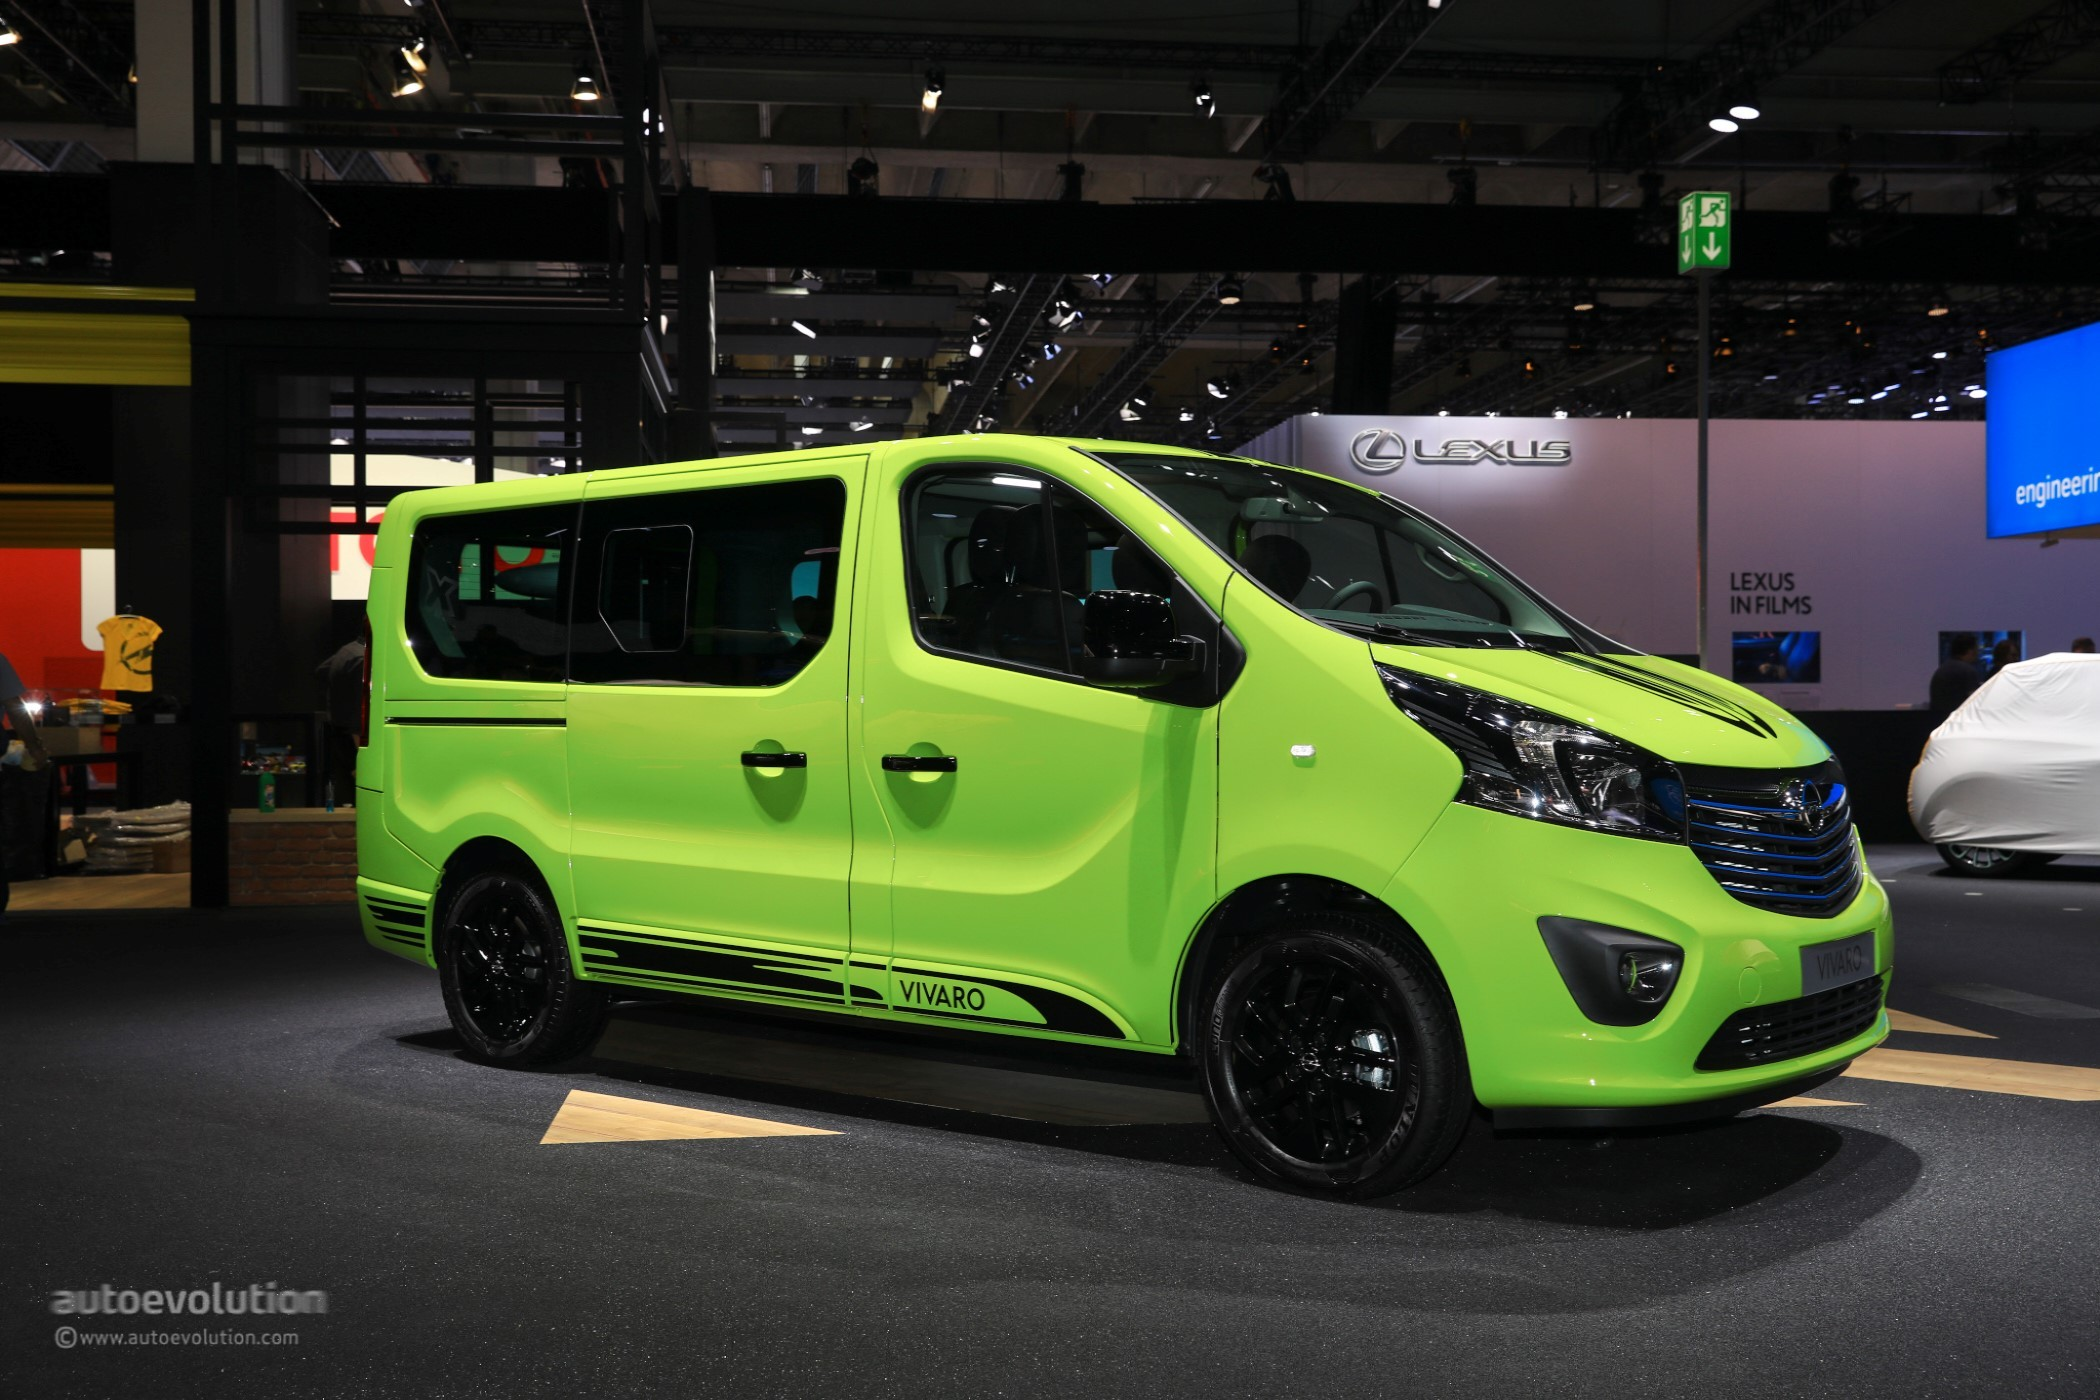 opel vivaro life makes camper vans look cool in frankfurt autoevolution. Black Bedroom Furniture Sets. Home Design Ideas